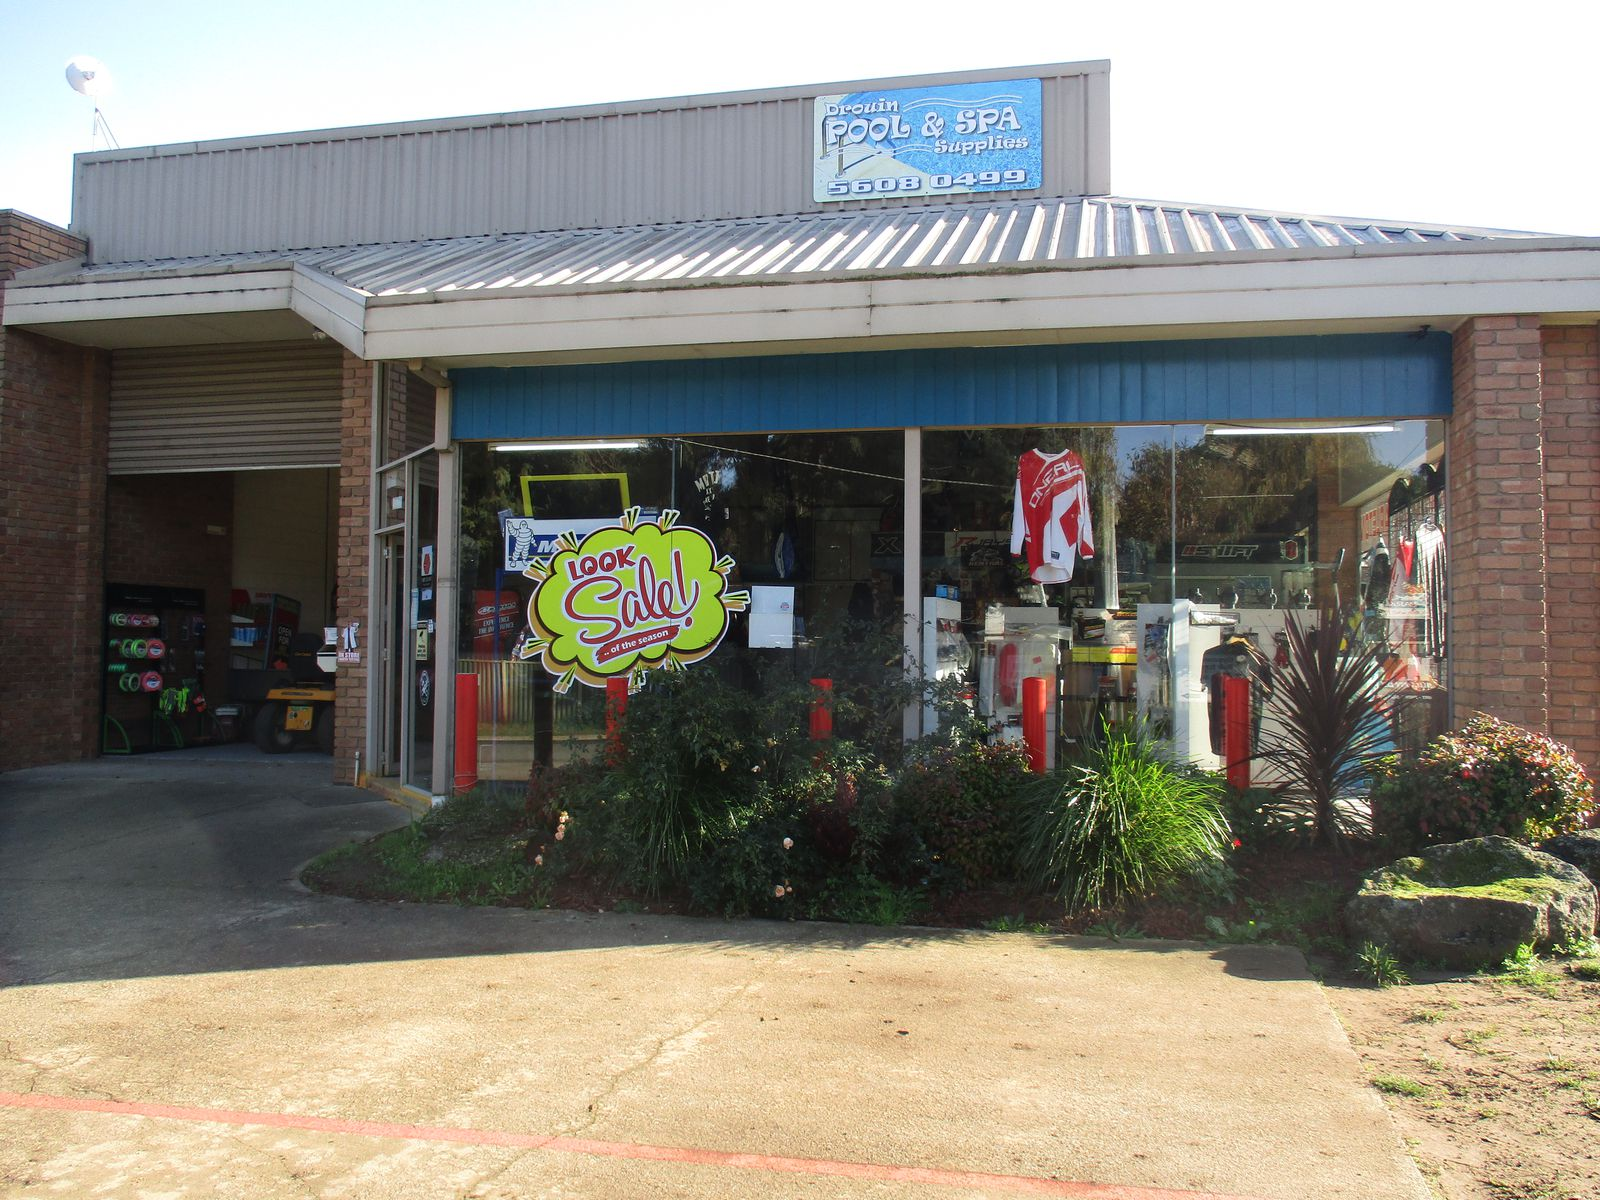 Adventure Motorcycles and Small Engine Repairs & Drouin Pool and Spa Supplies